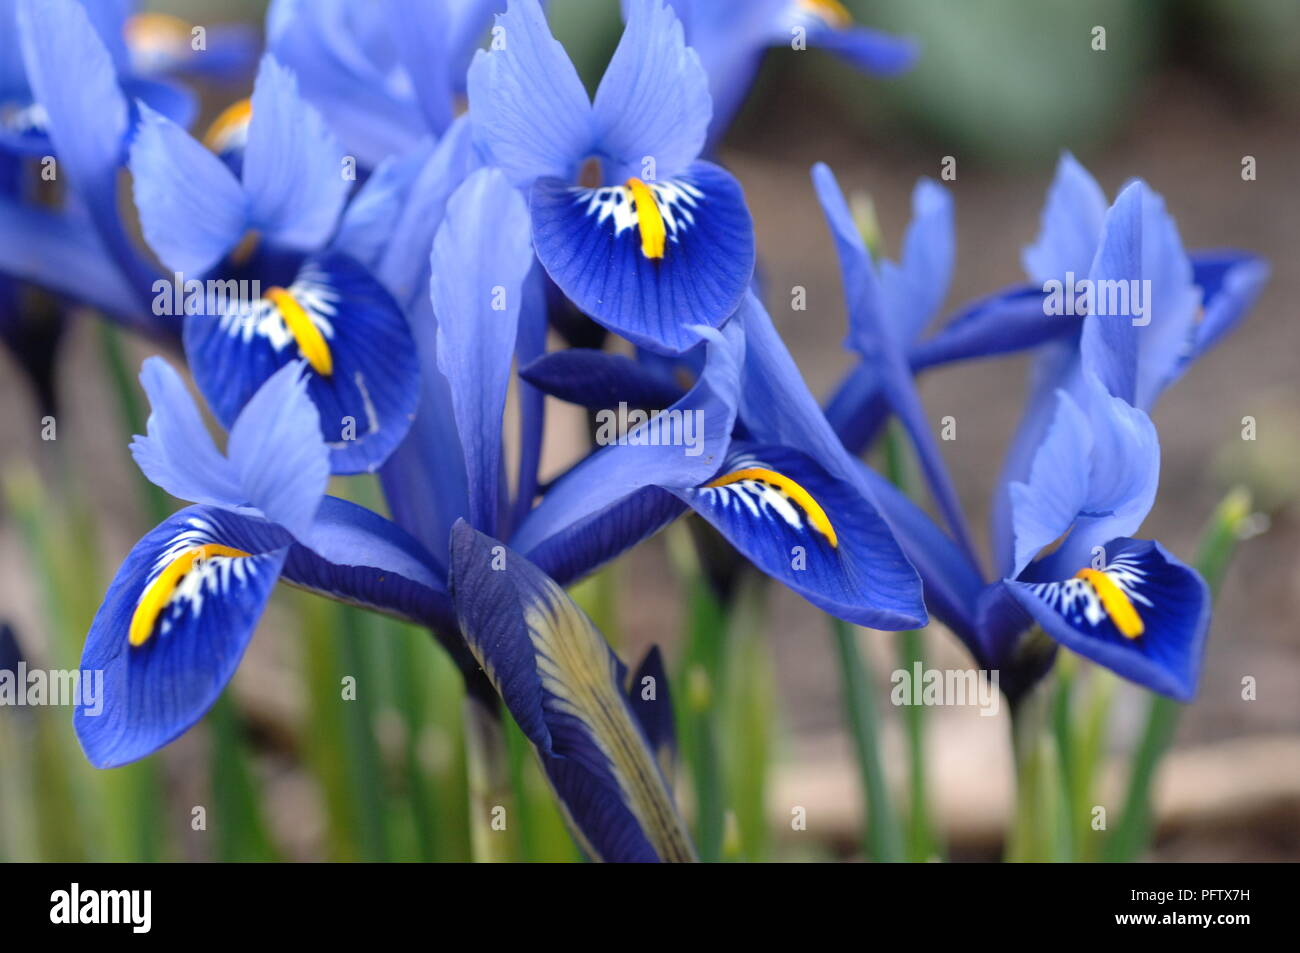 A Close Up Of Blue Iris Flowers At The Botanical Gardens In